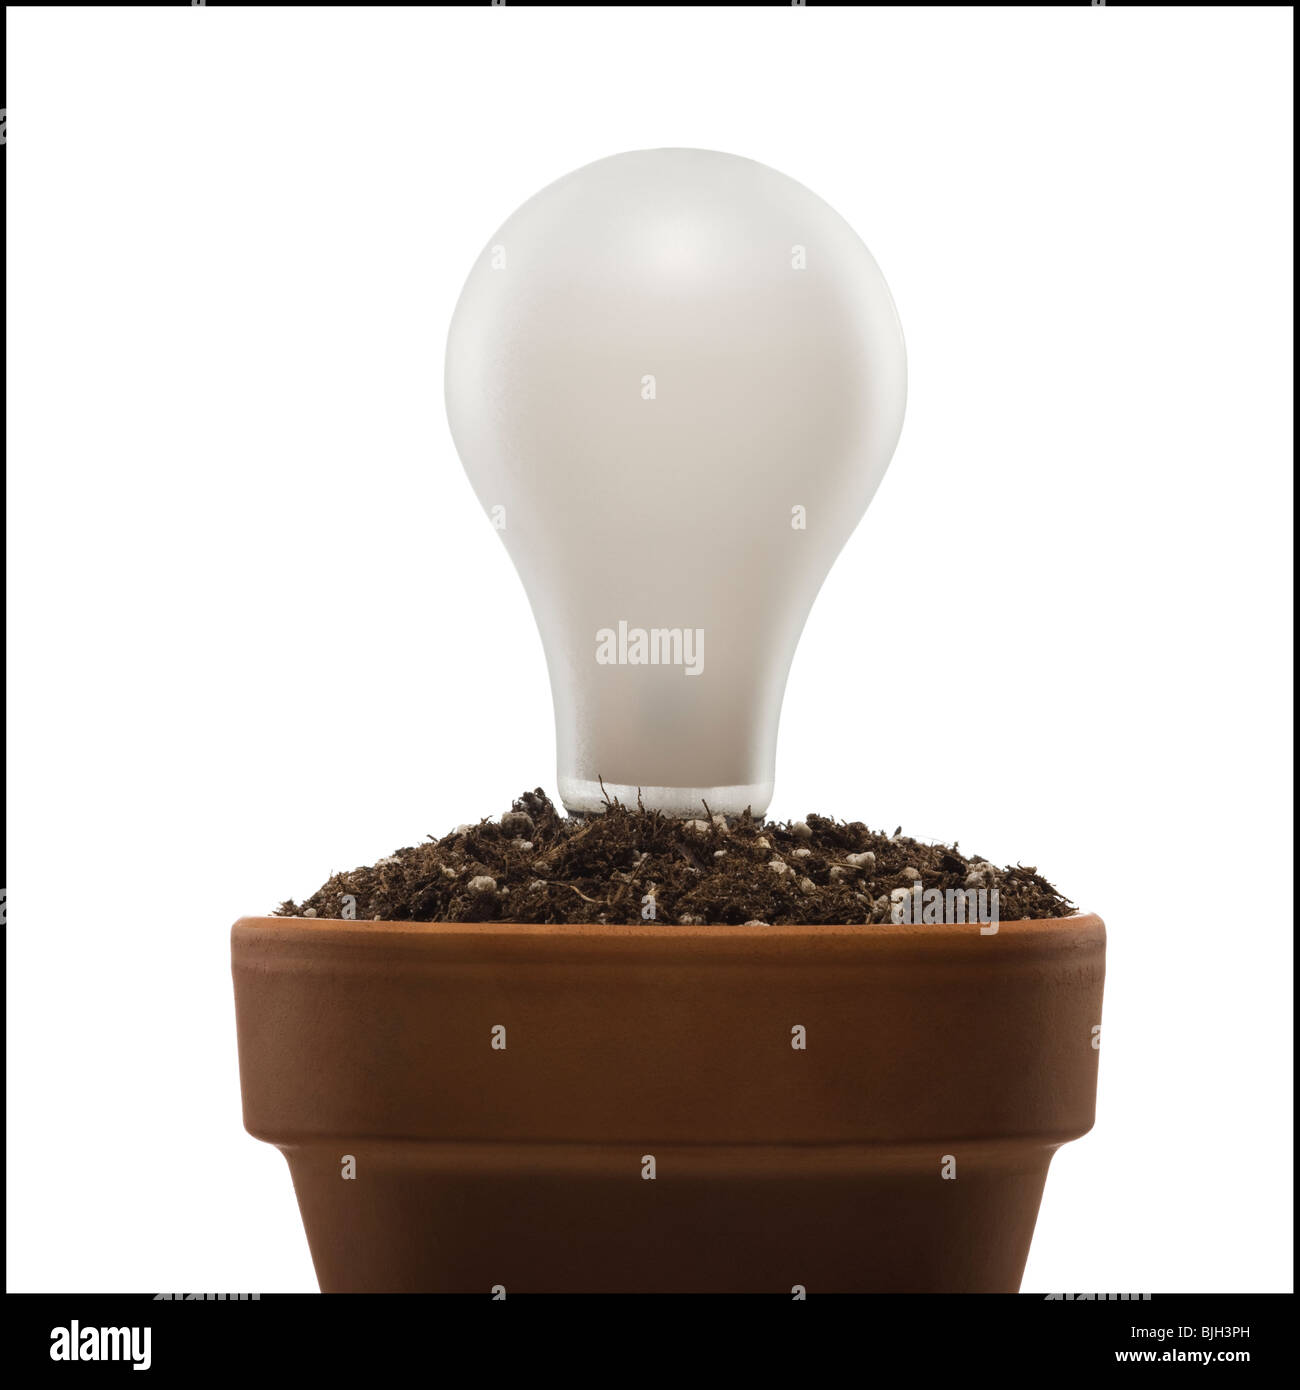 light bulb planted in a pot of soil - Stock Image